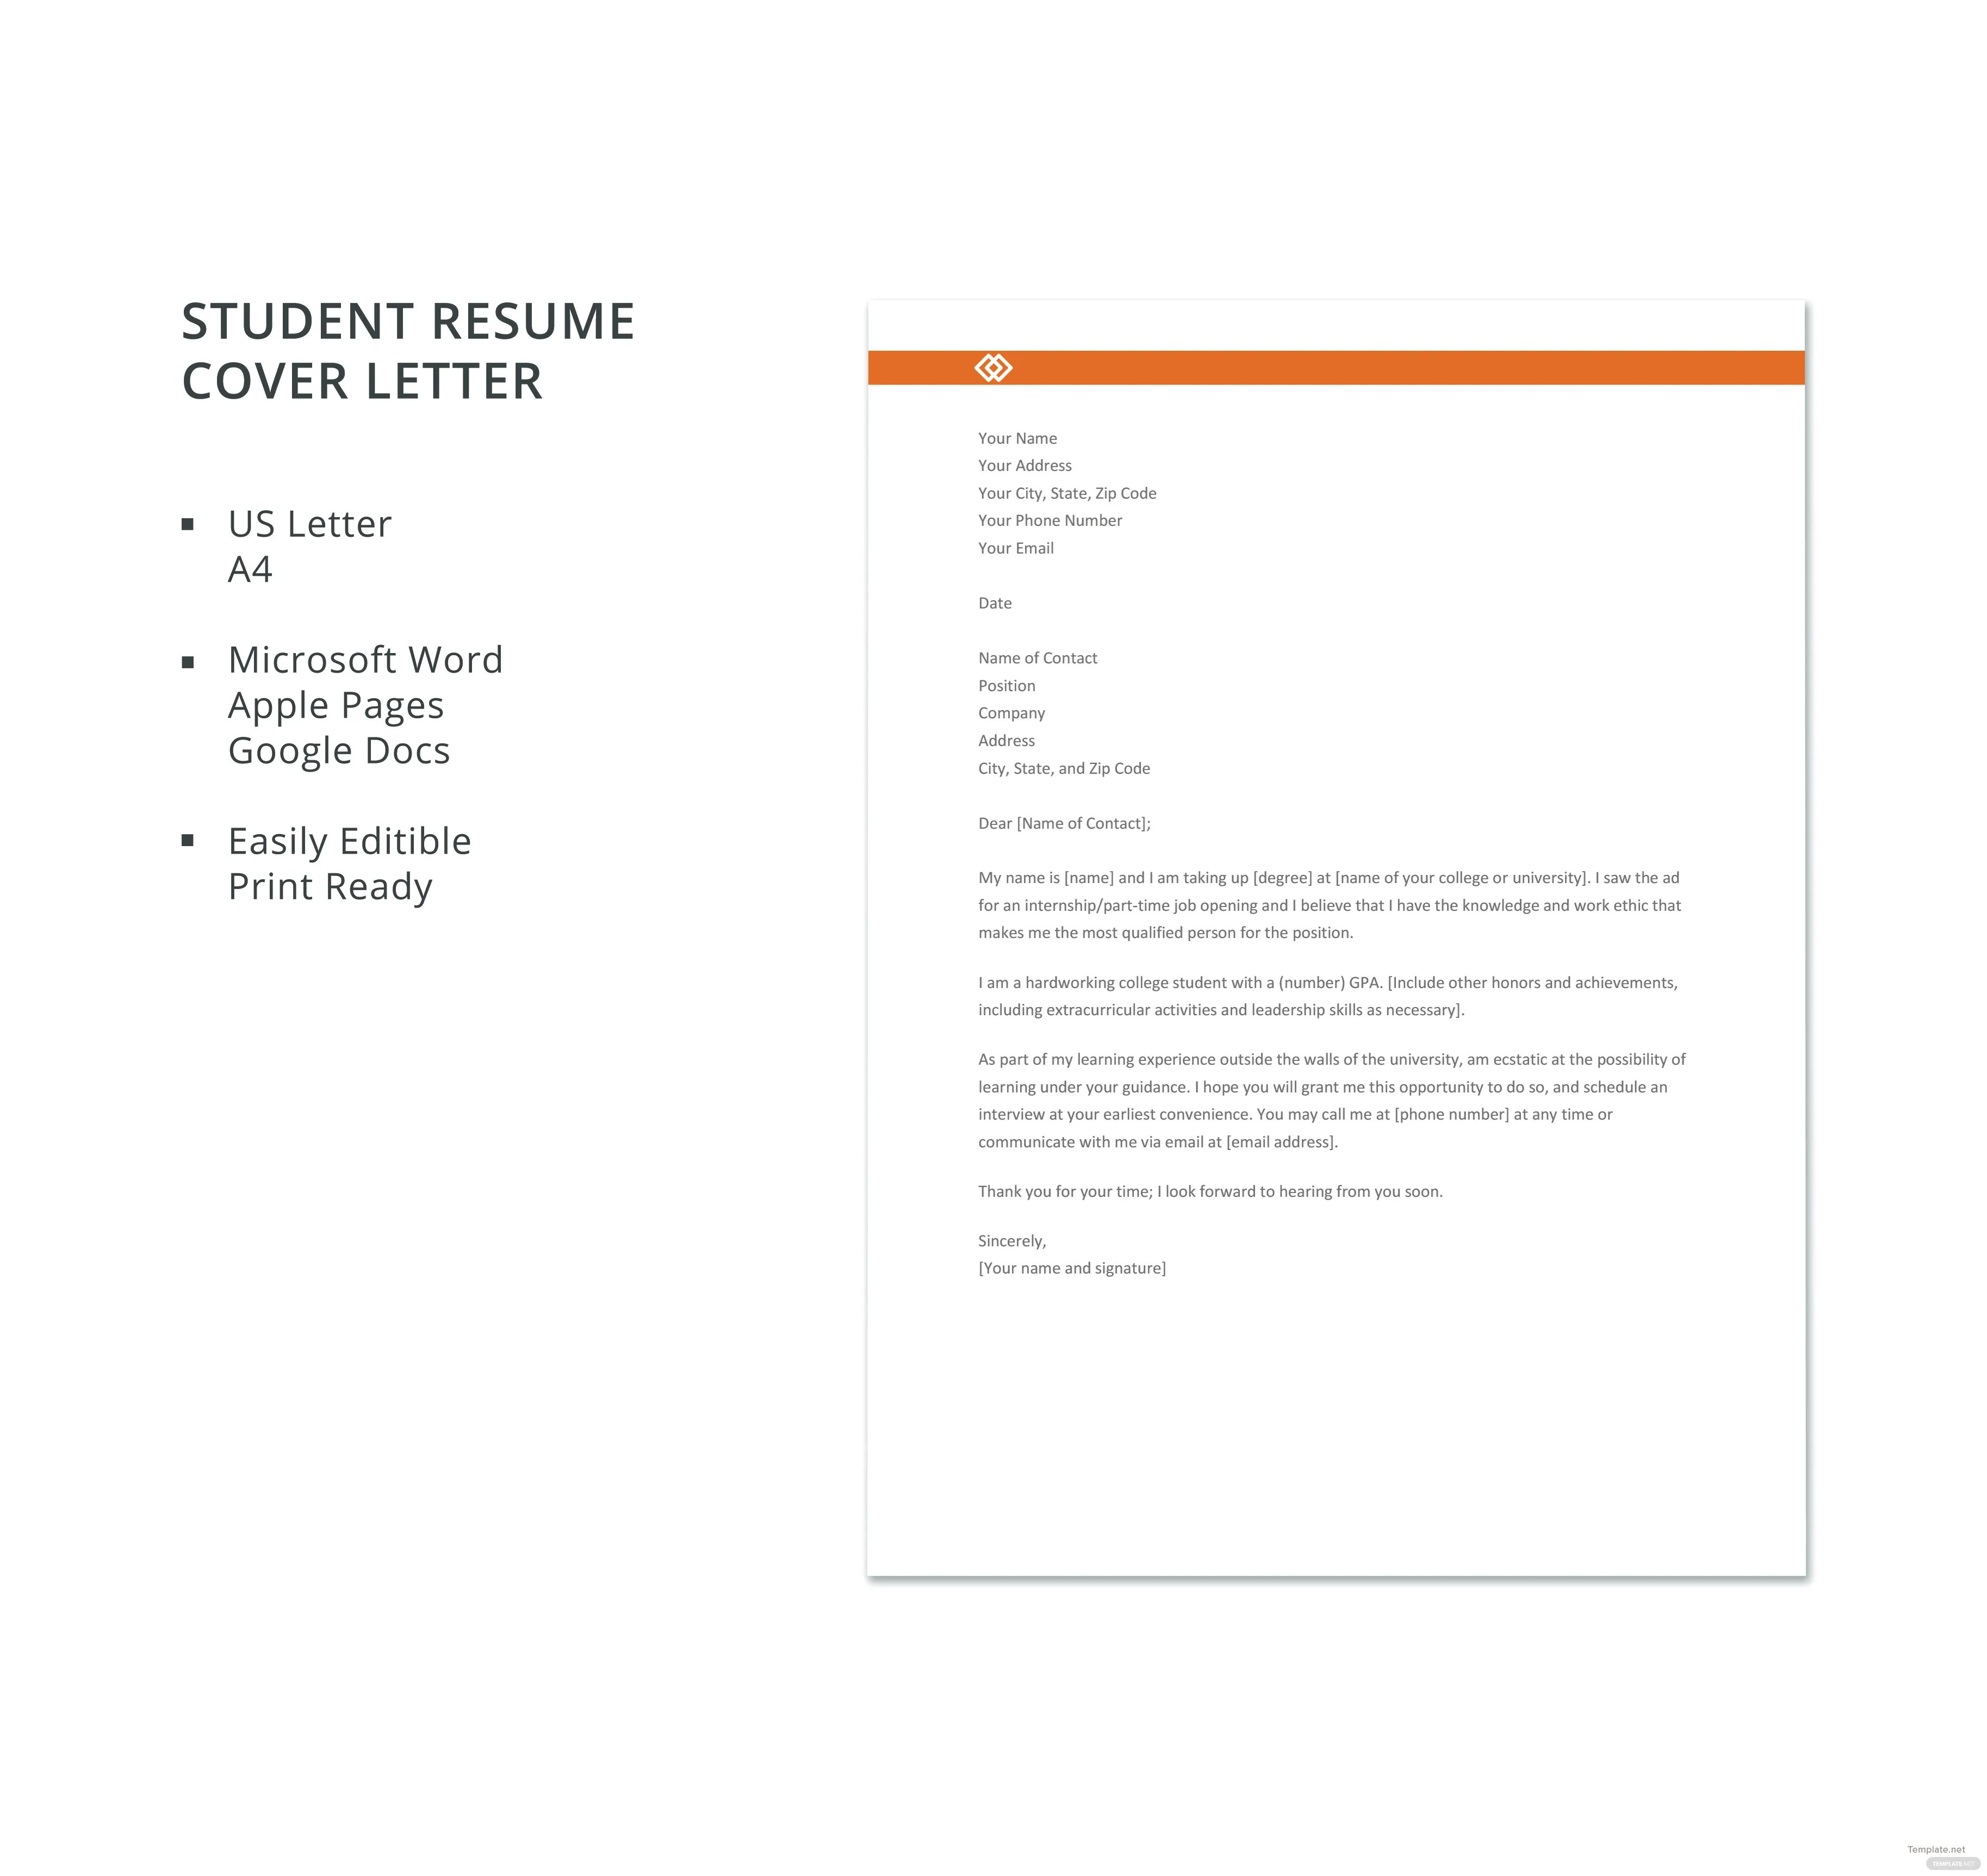 Free Student Resume Cover Letter Template in Microsoft Word Apple Pages Google Docs  Templatenet